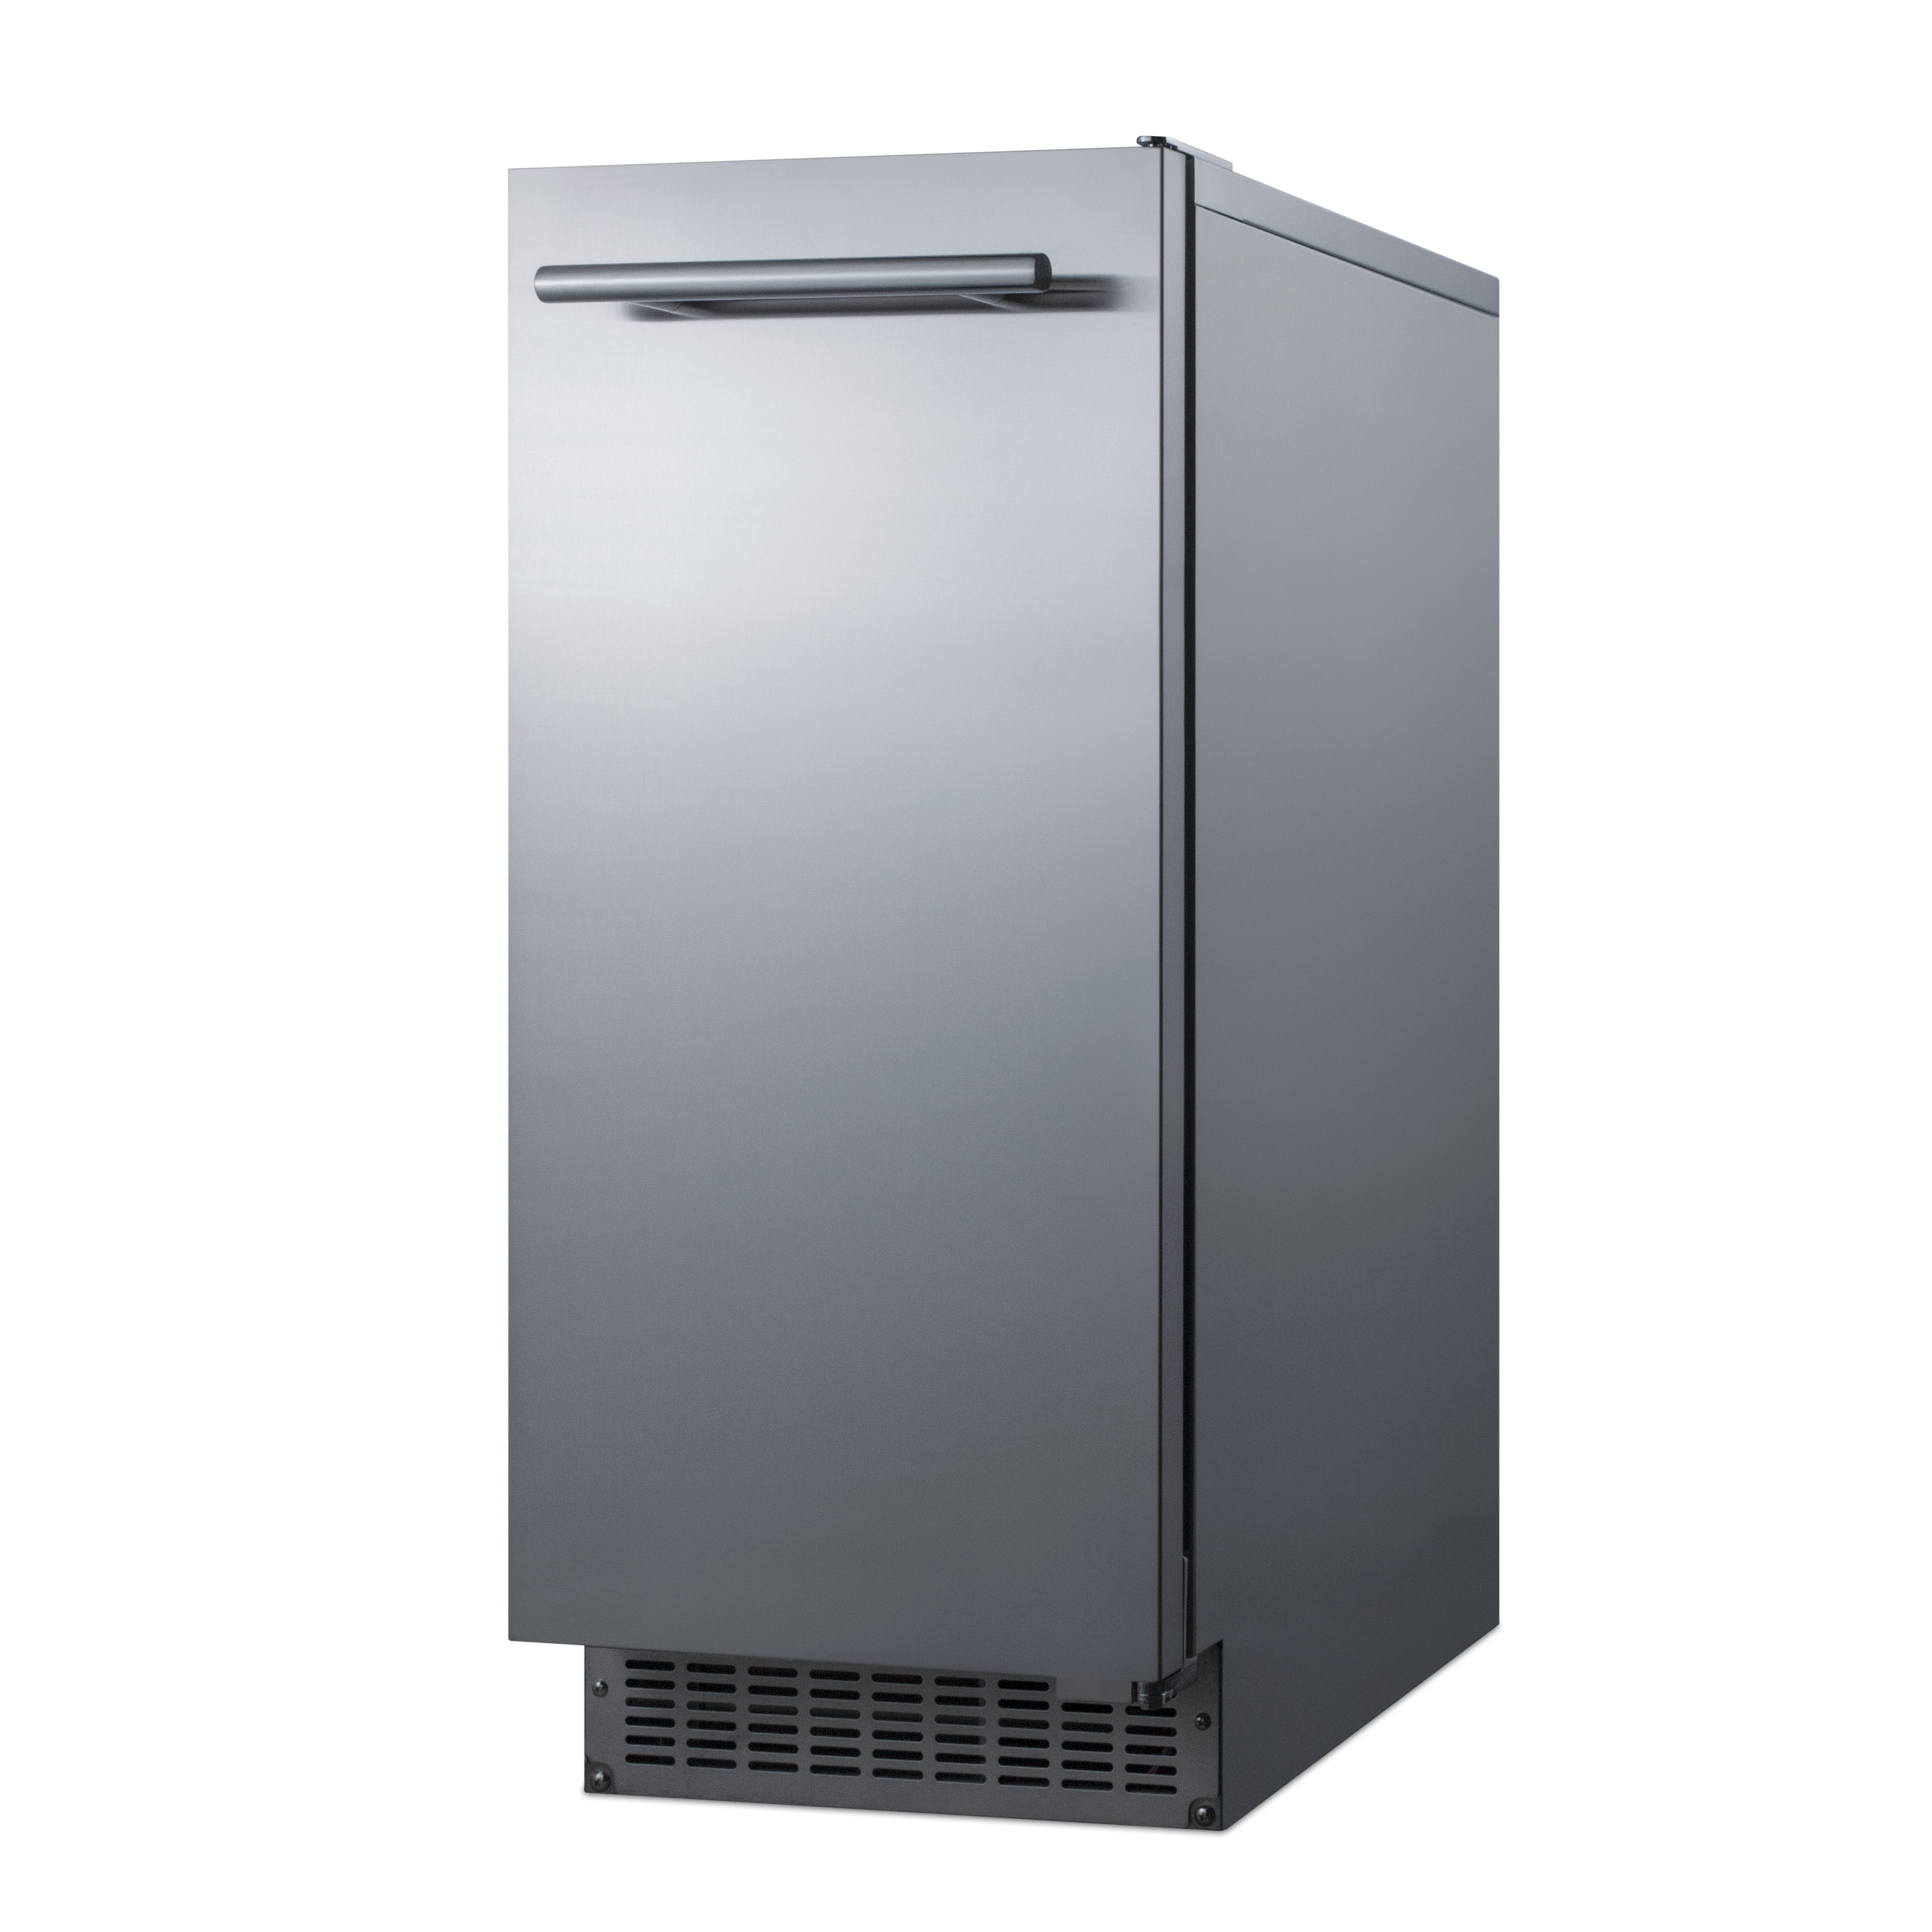 Summit Commercial BIM68OSPUMP ice maker with bin, cube-style